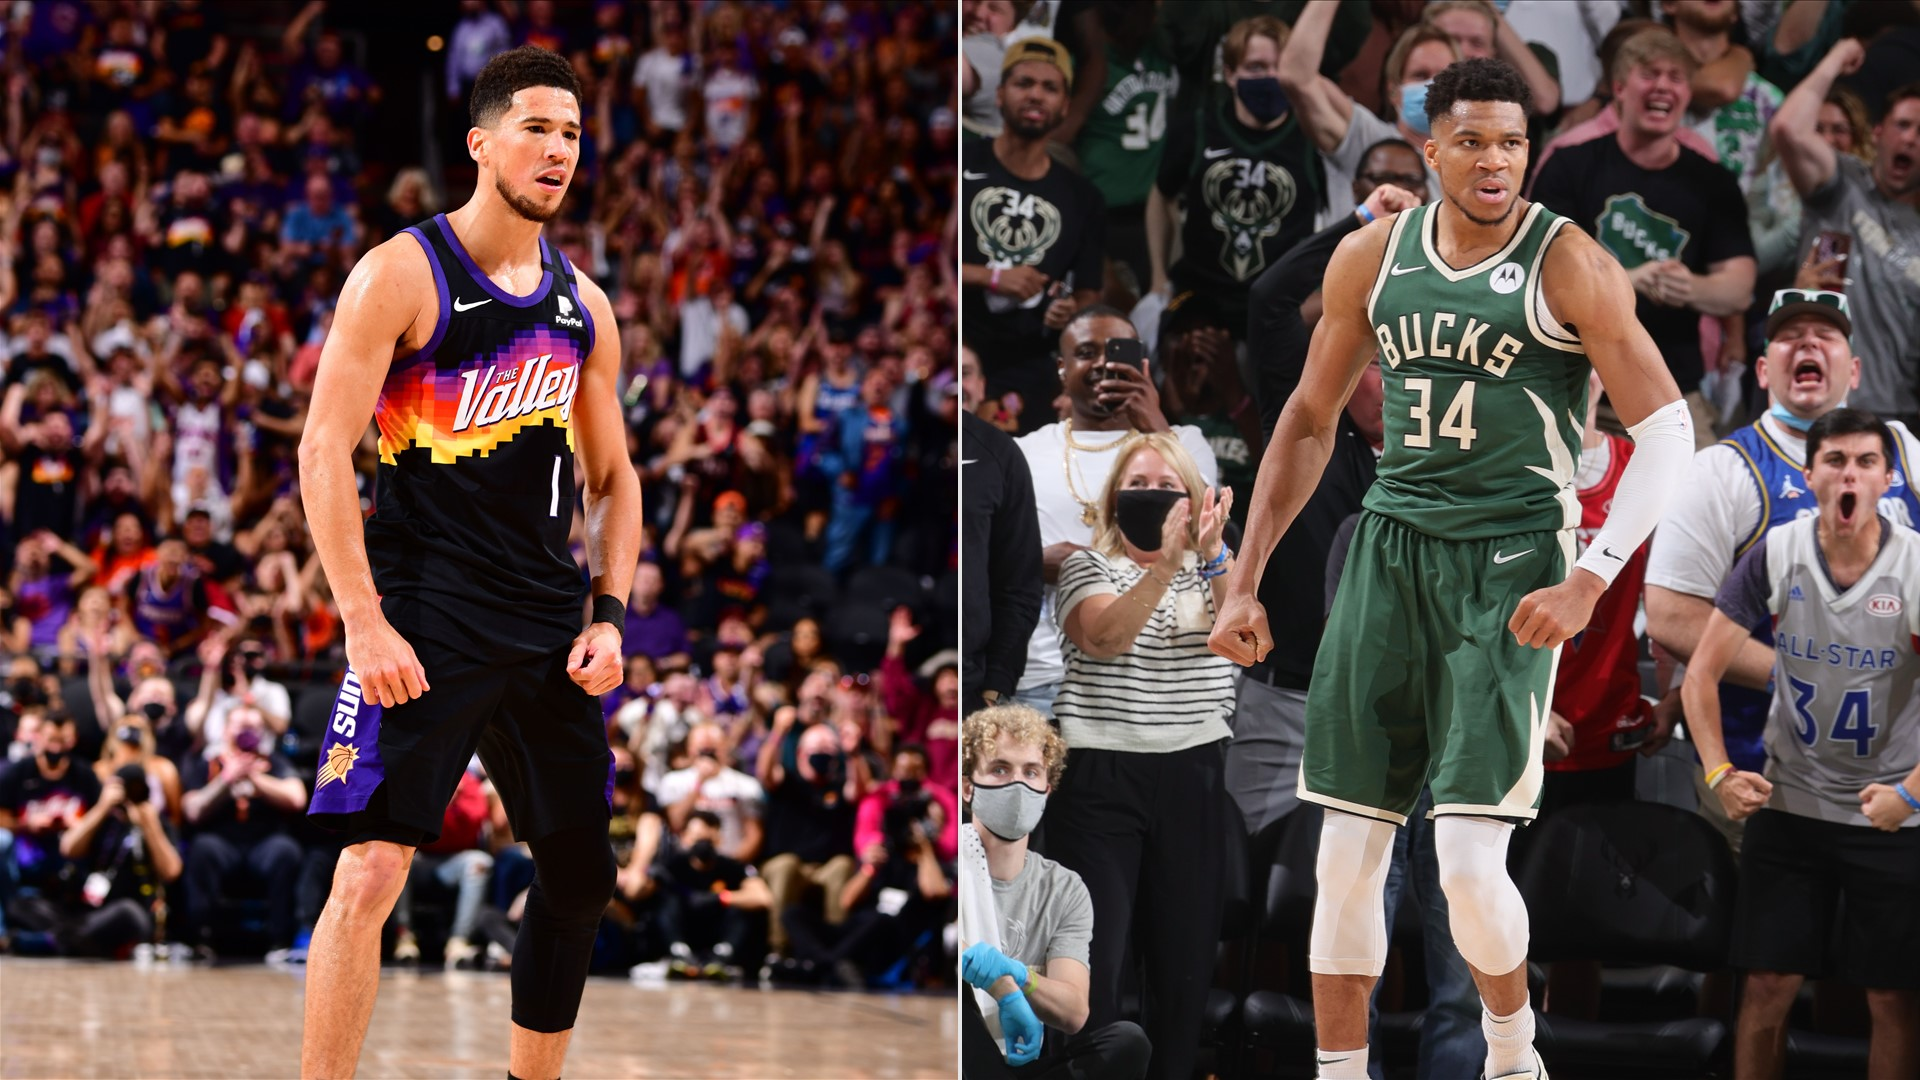 NBA Finals 2021: Devin Booker and Giannis Antetokounmpo take Kobe Bryant's  influence to biggest stage   NBA.com Canada   The official site of the NBA